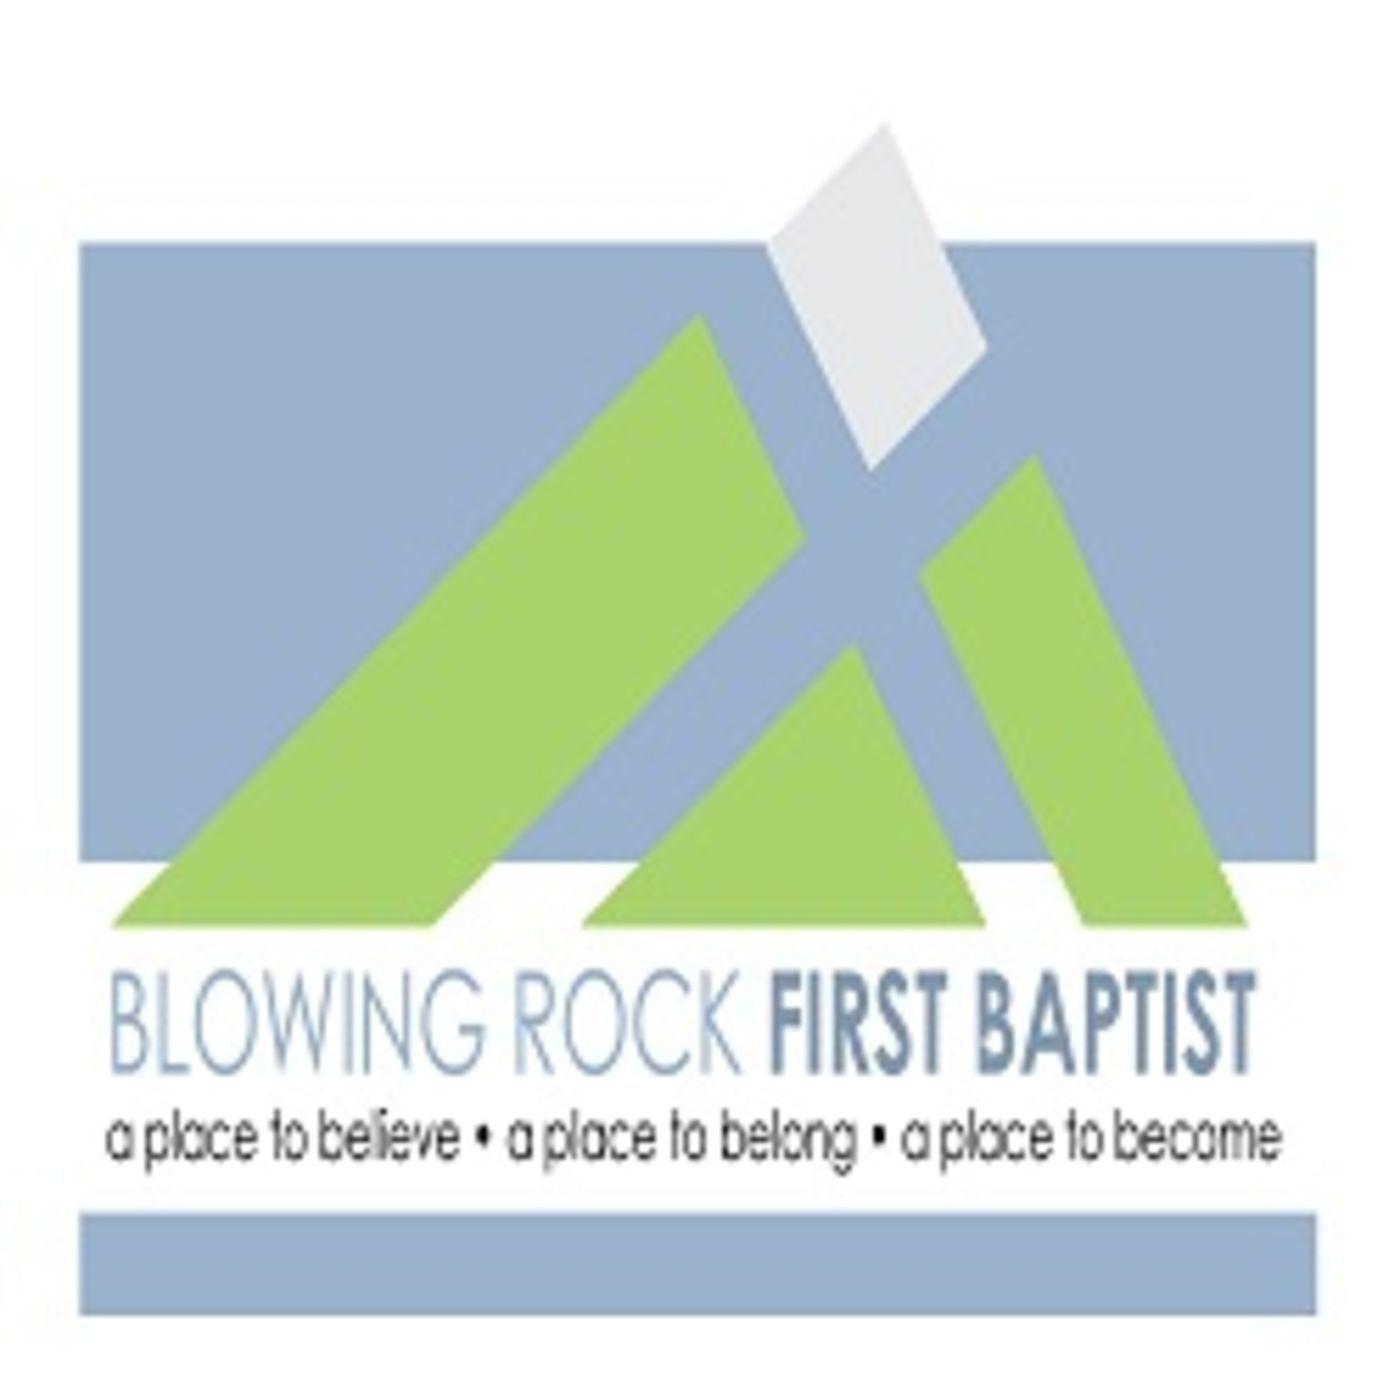 First Baptist Blowing Rock Podcast Rusty Guenther Listen Notes